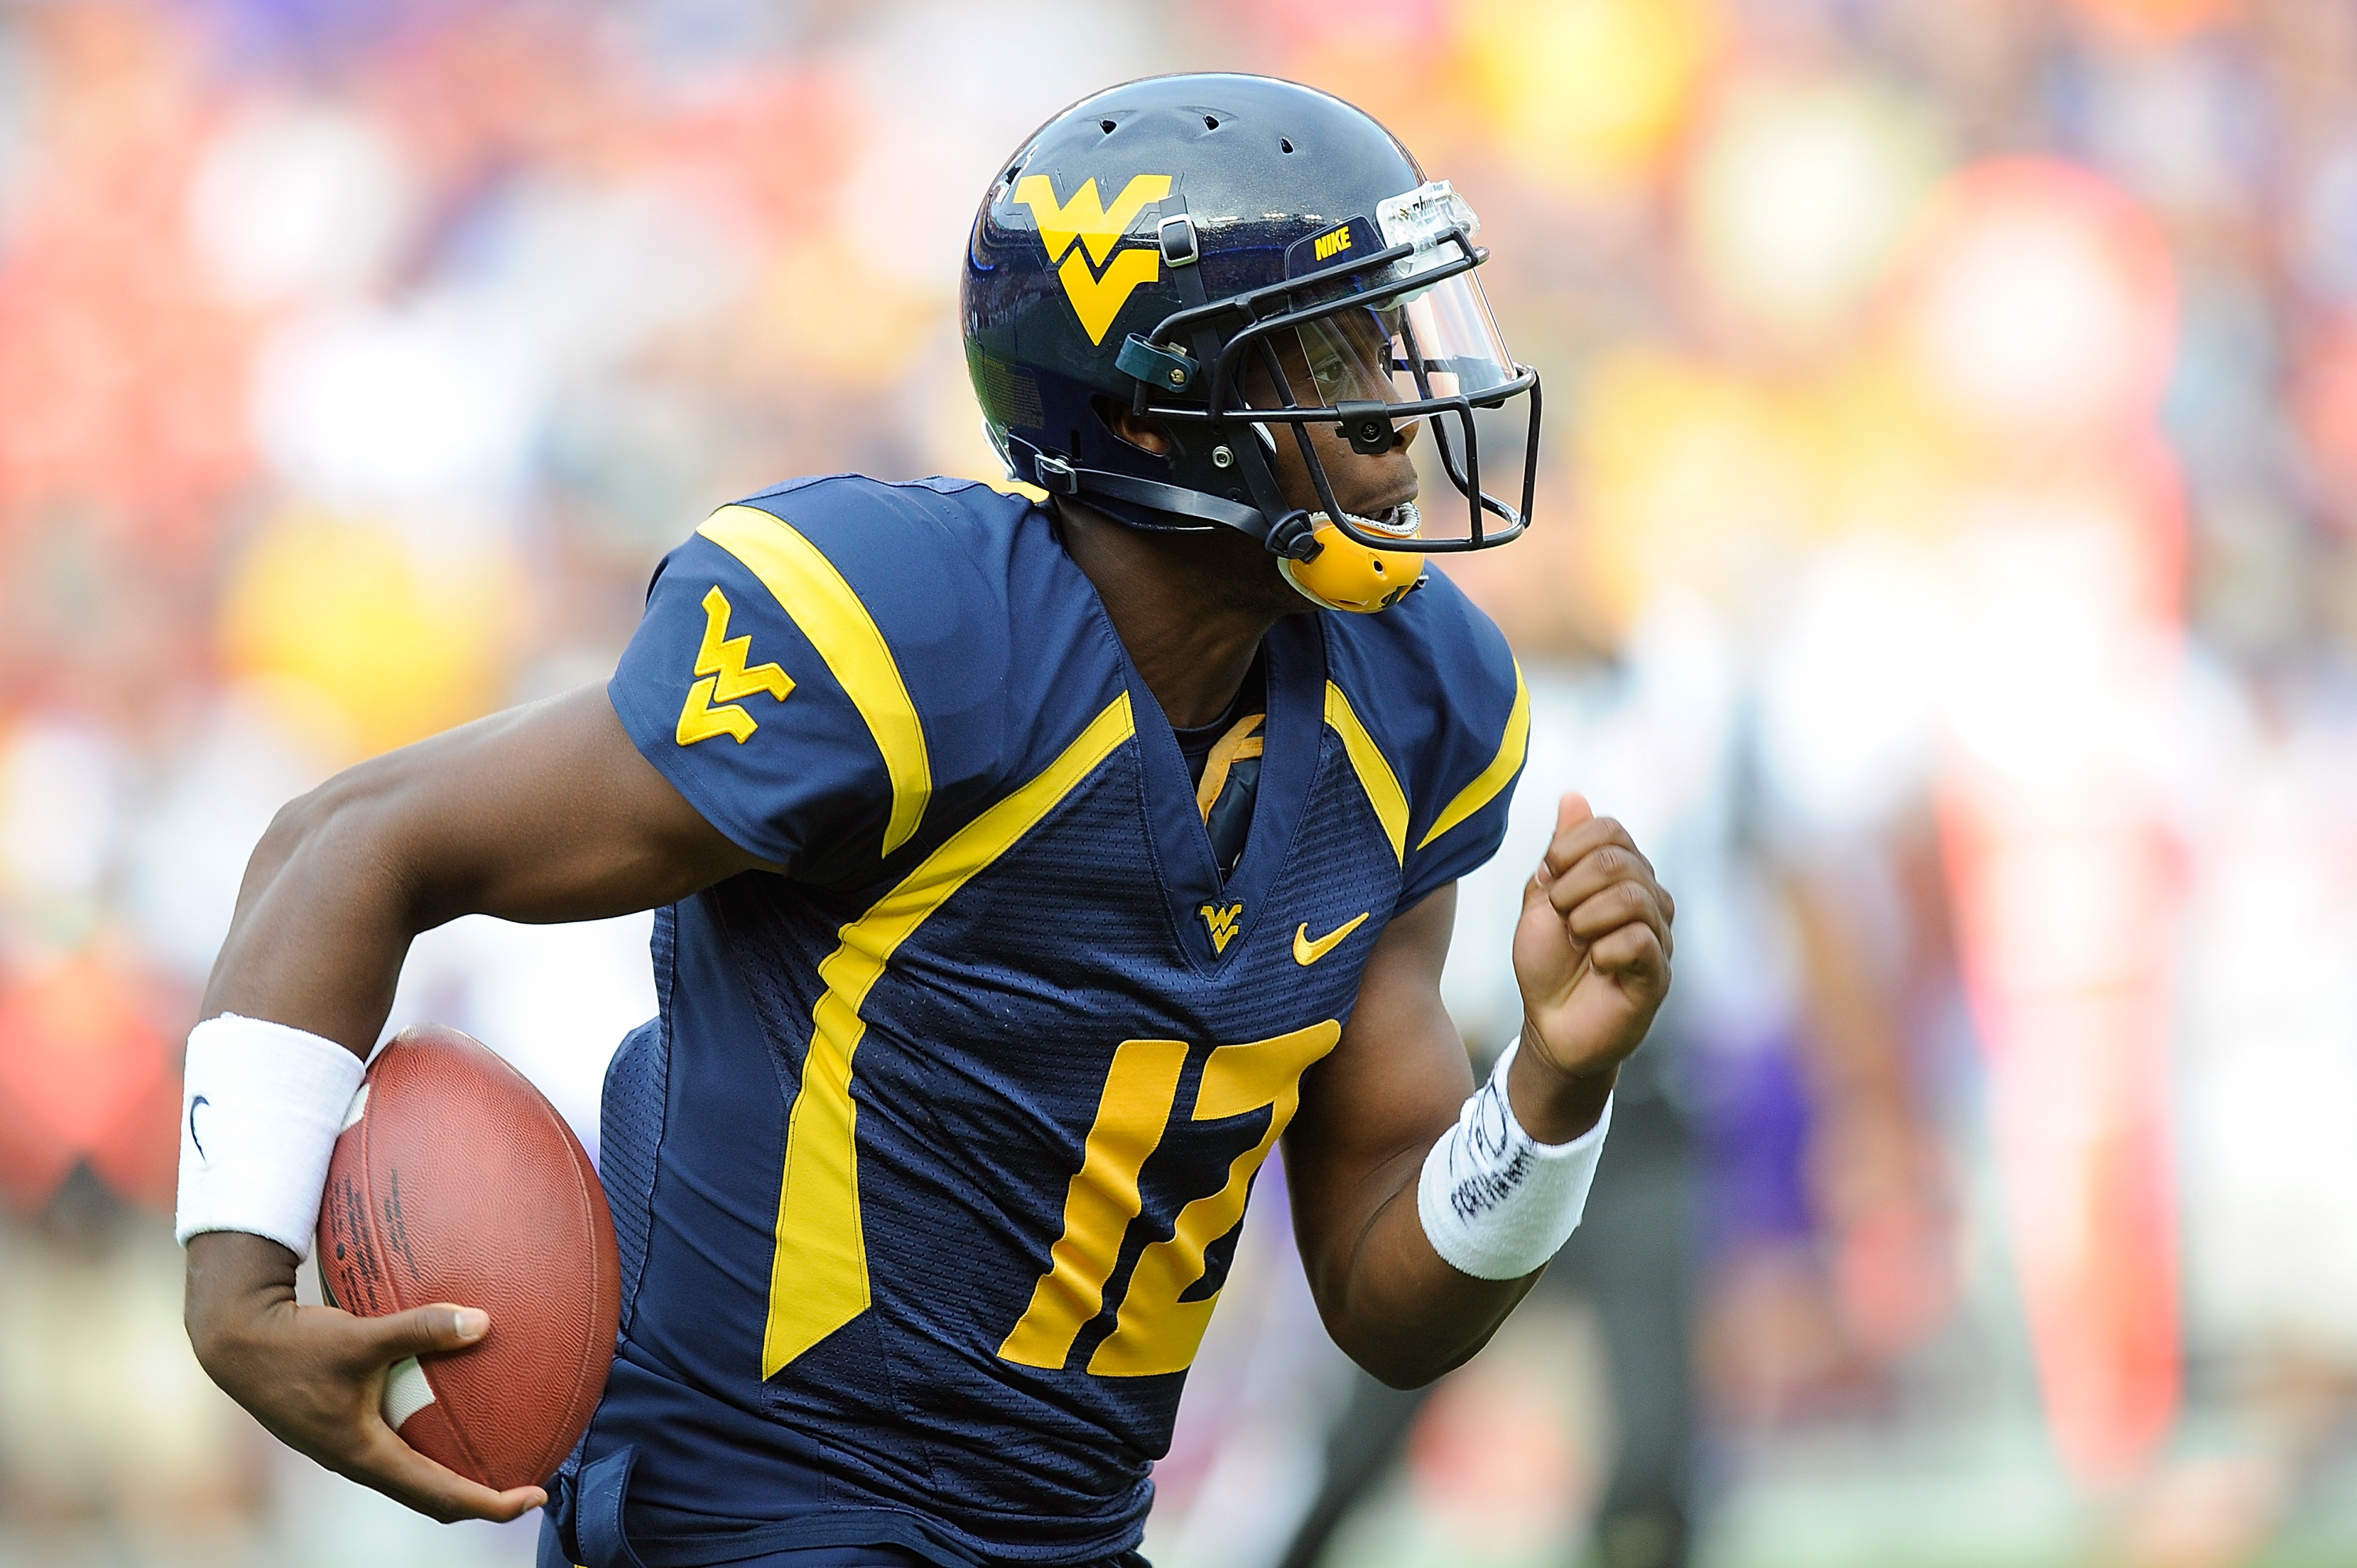 LANDOVER, MD - SEPTEMBER 15:  Geno Smith #12 of the West Virginia Mountaineers runs the ball against the James Madison Dukes during a game at FedExField on September 15, 2012 in Landover, Maryland.  (Photo by Patrick McDermott/Getty Images)